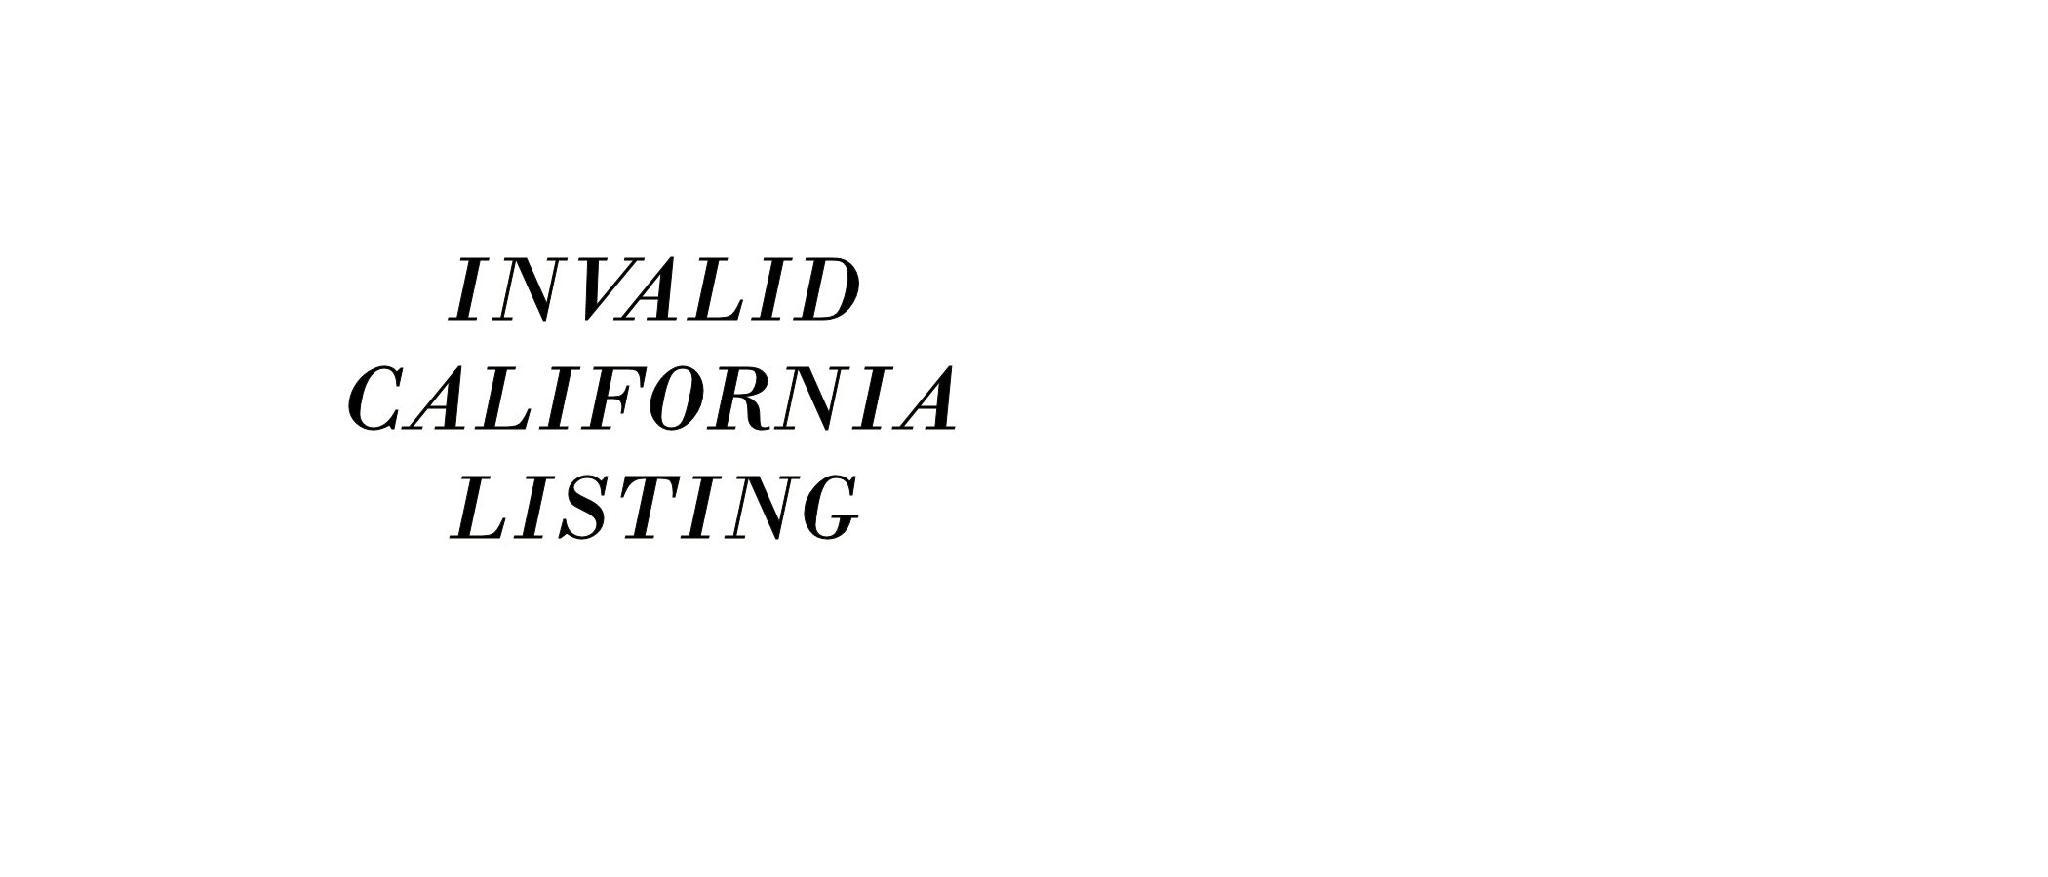 DEAD LISTING INVALID NOT AVAILABLE